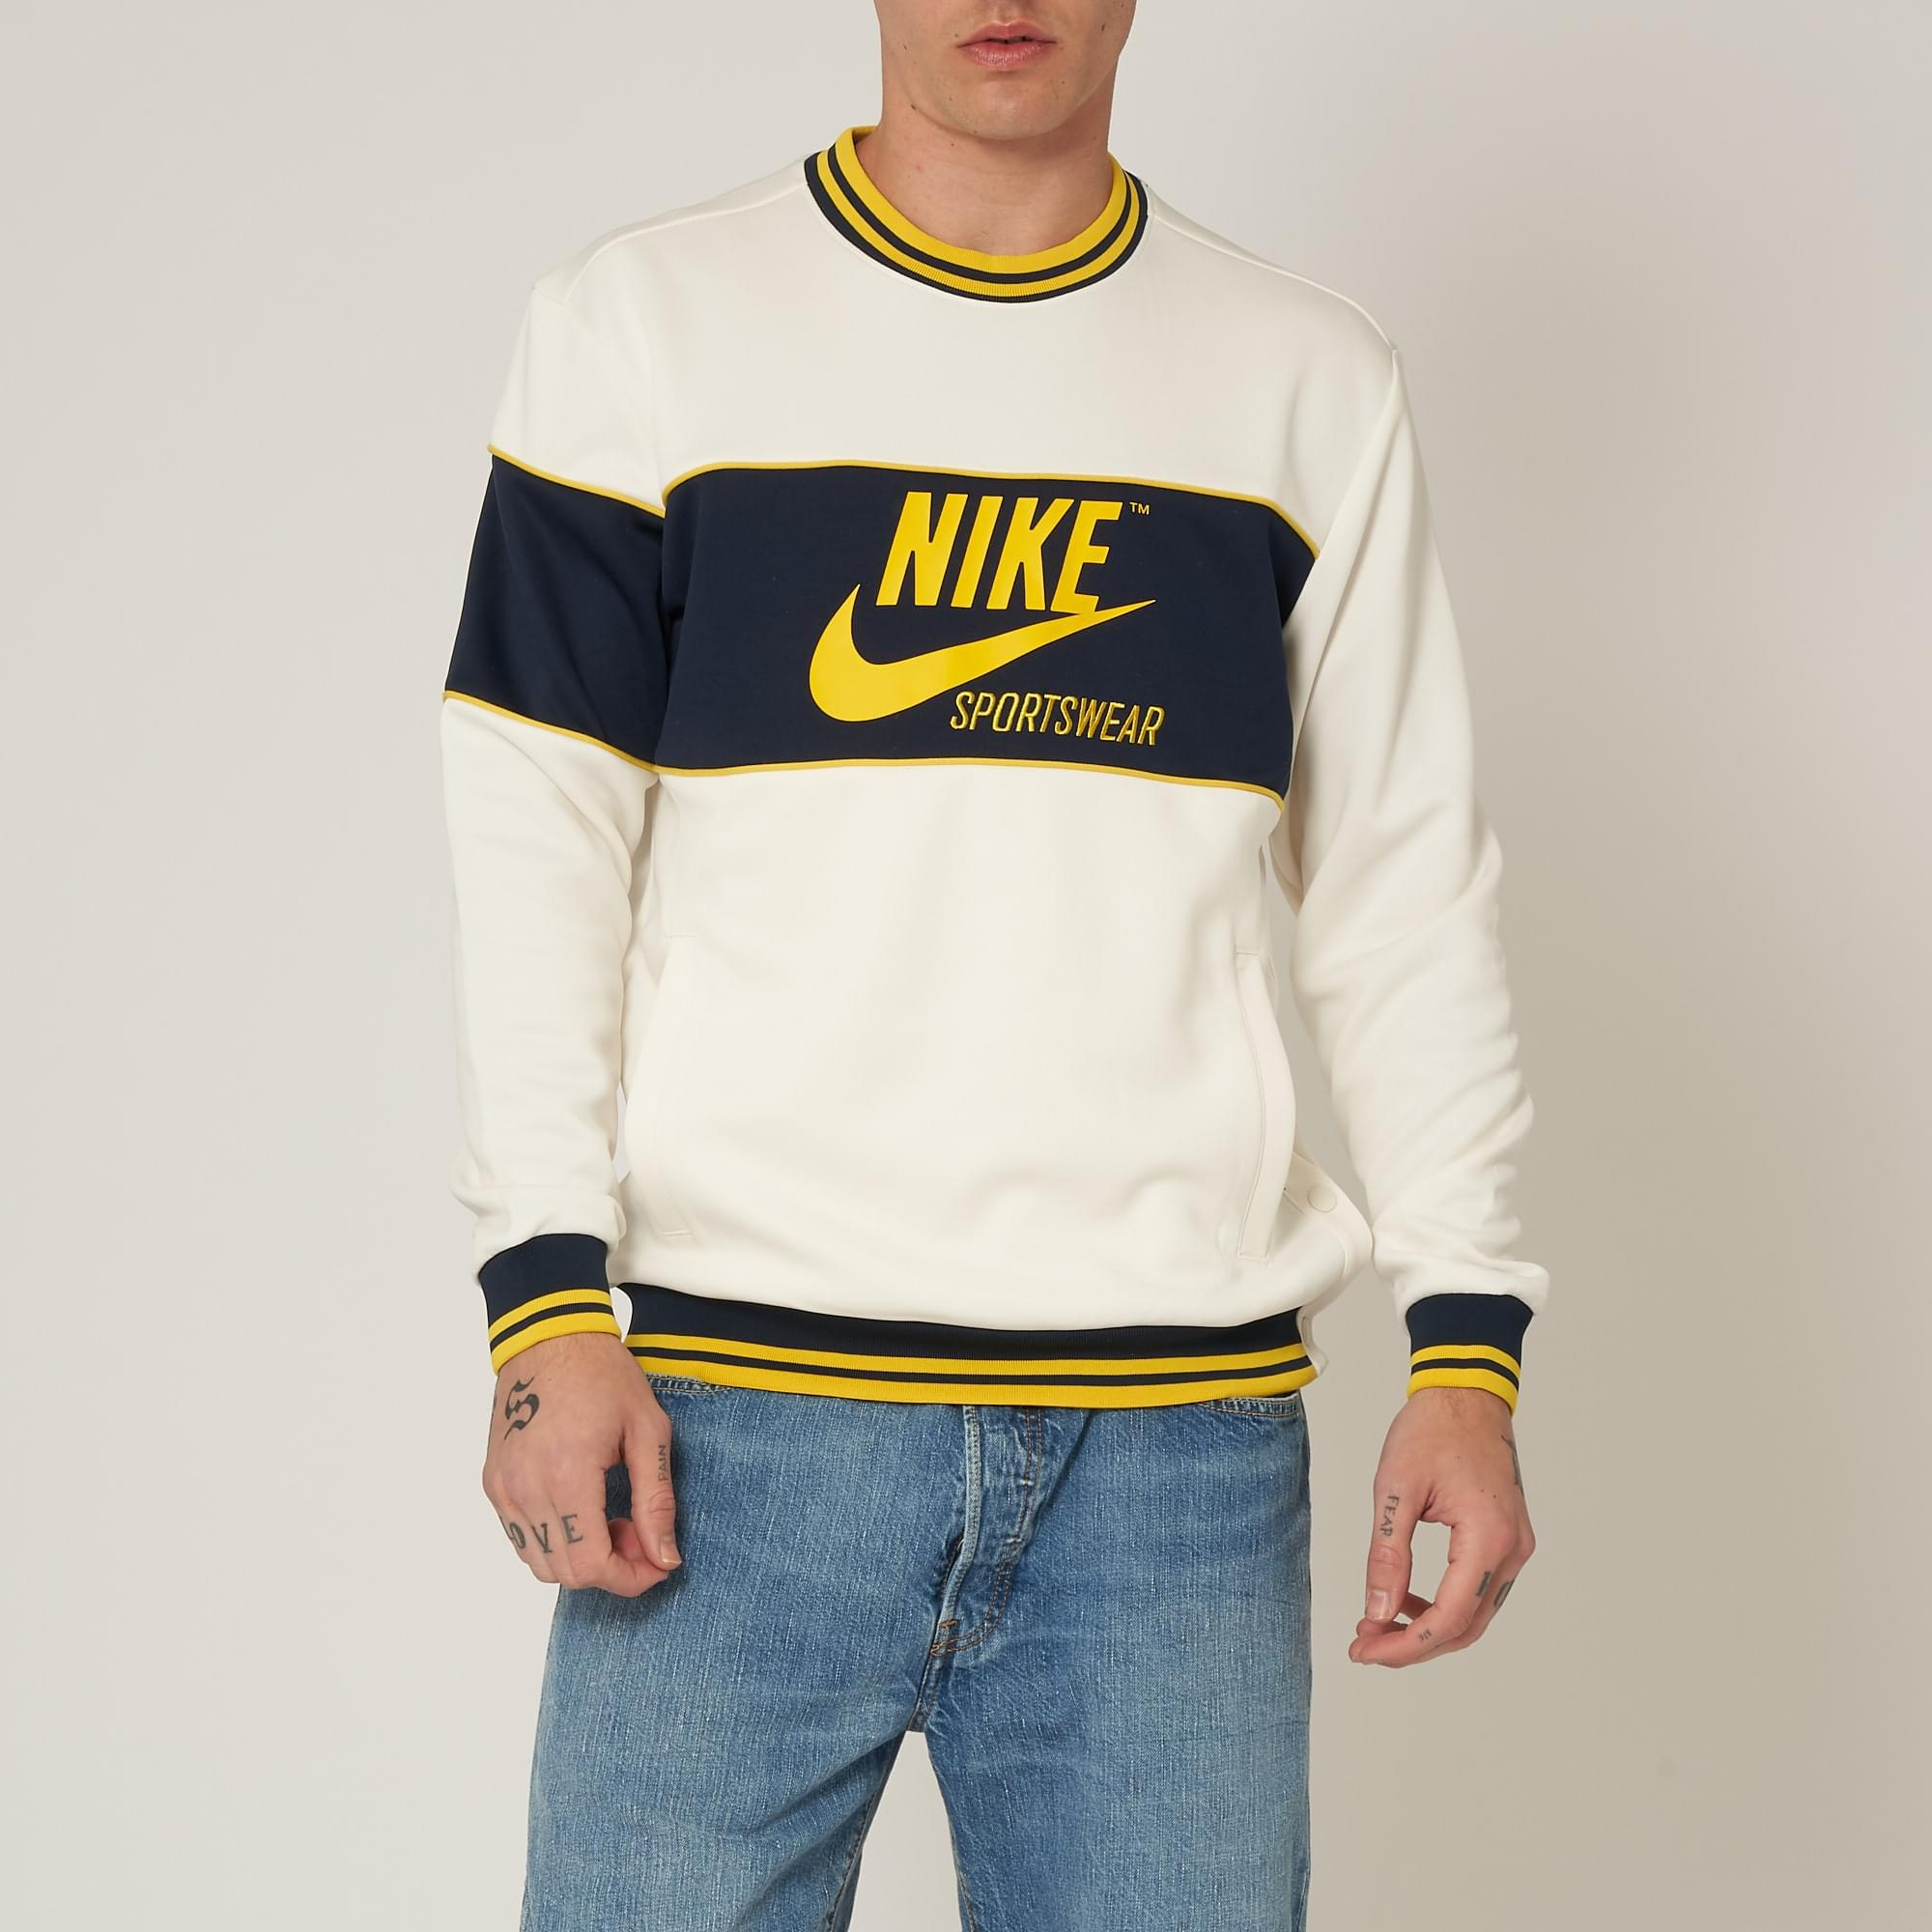 new styles 5a52a 2b634 Nike Sportswear Archive Crew Neck Sweatshirt for Men - Lyst